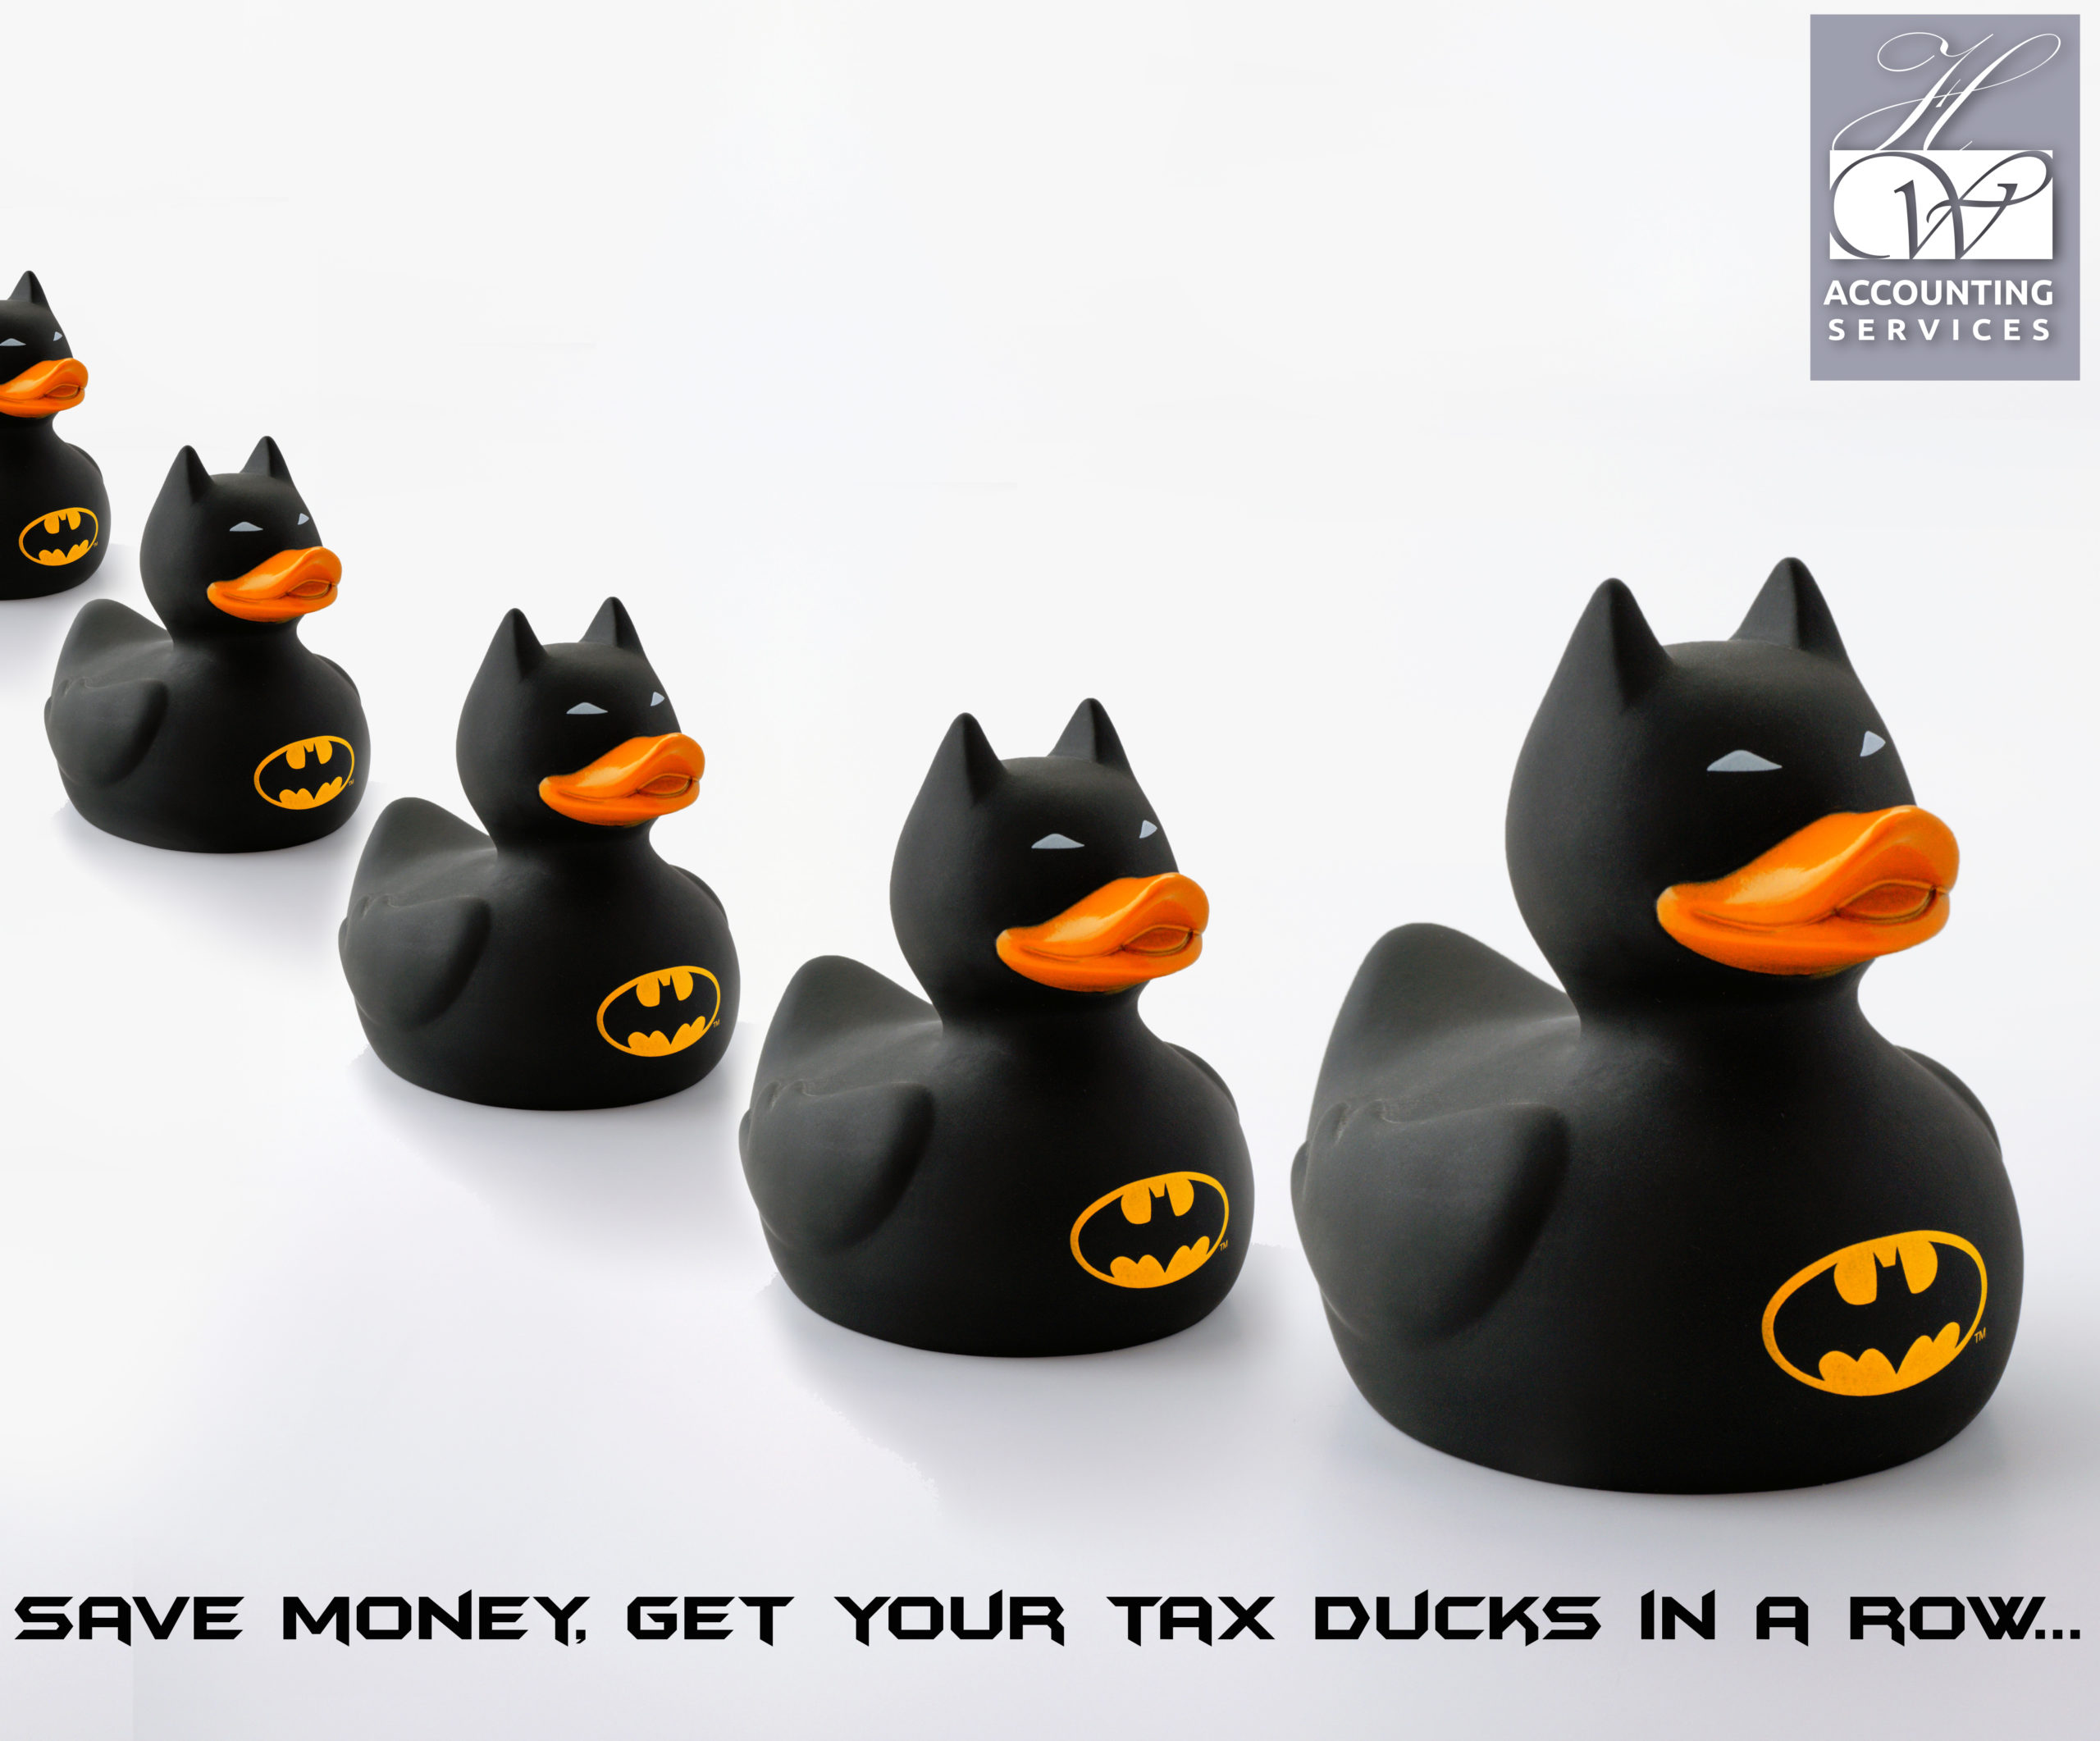 Saving on Tax For your Small Business